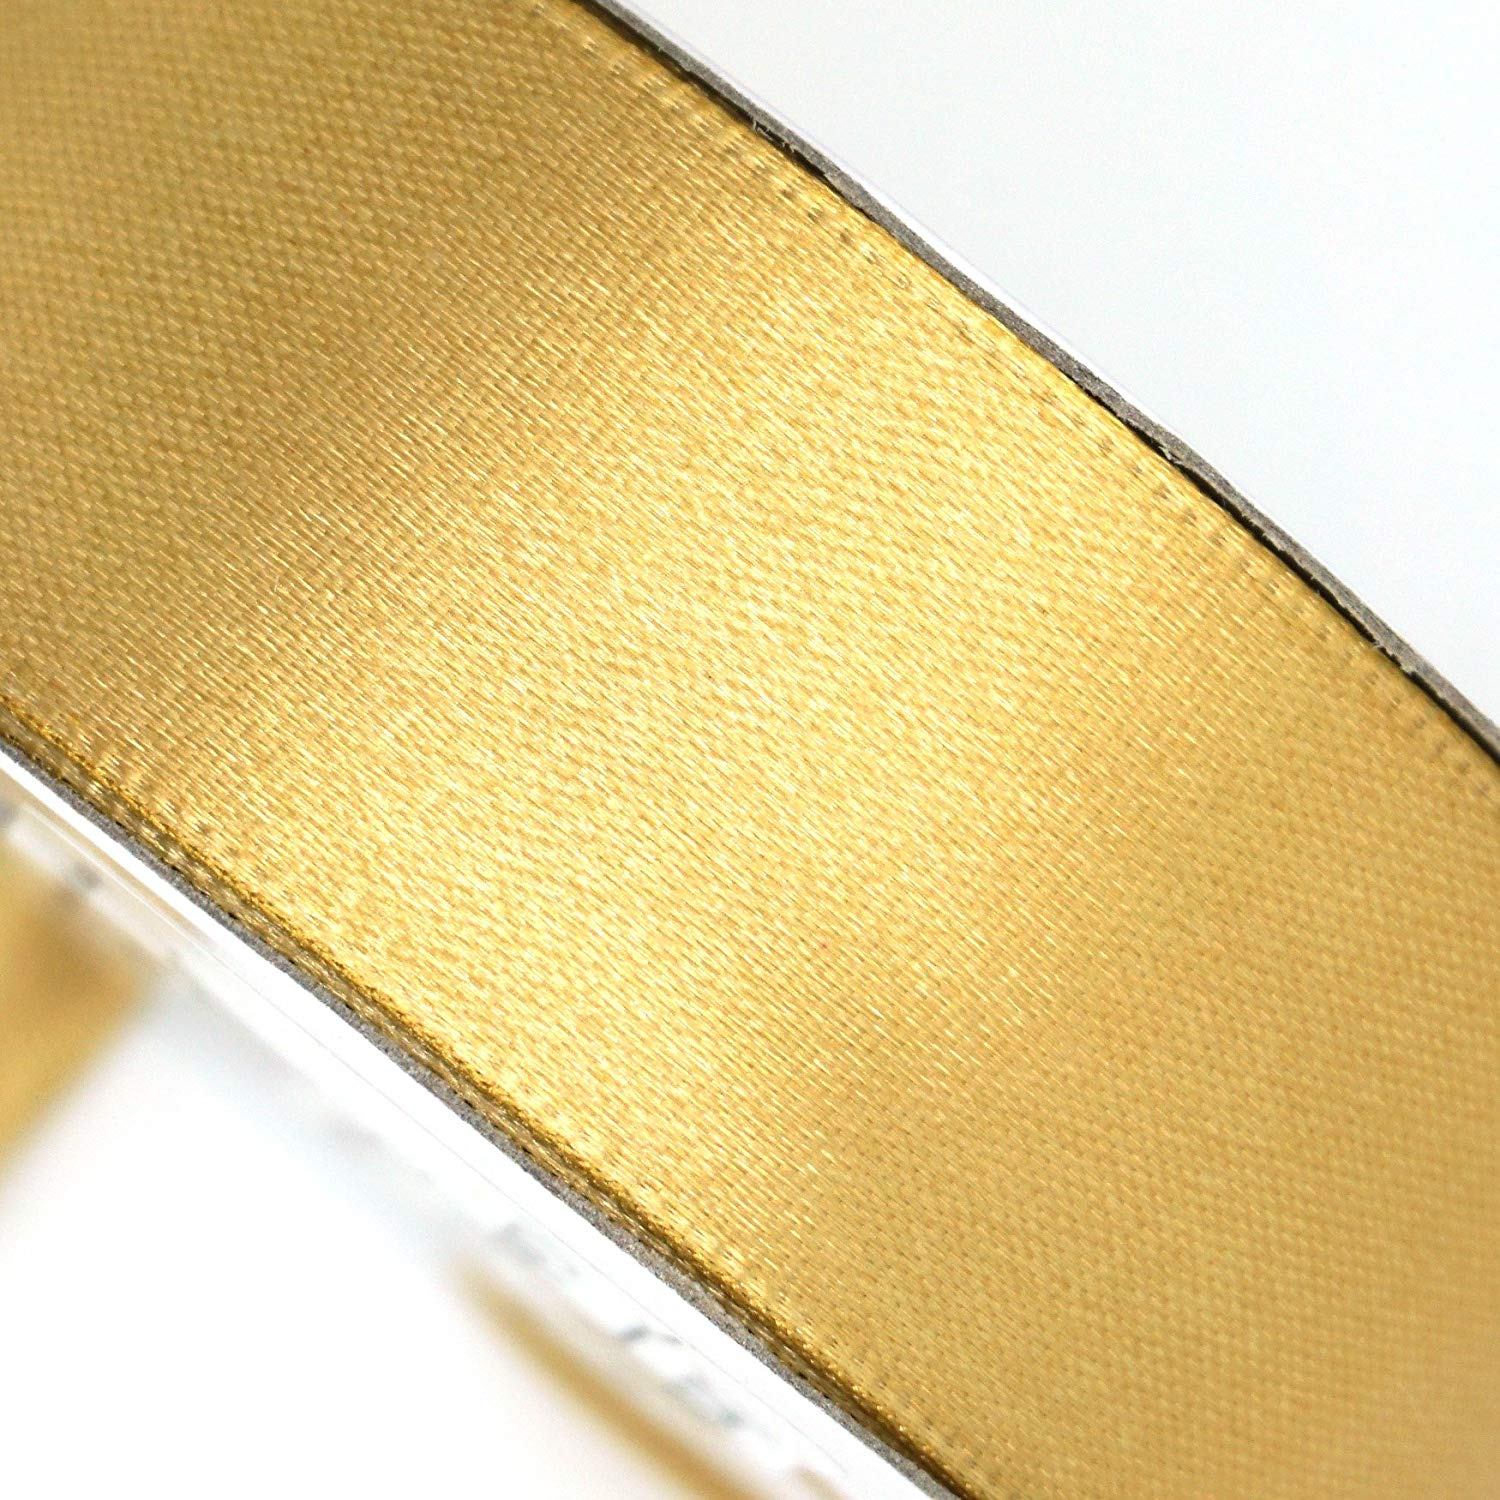 "25 Yard Satin Ribbon Rolls In 24 Colors - Select Size: 1/4"", 3/8"", 1/2"", 5/8"", 3/4"", 1"" (1/4"", Gold)"